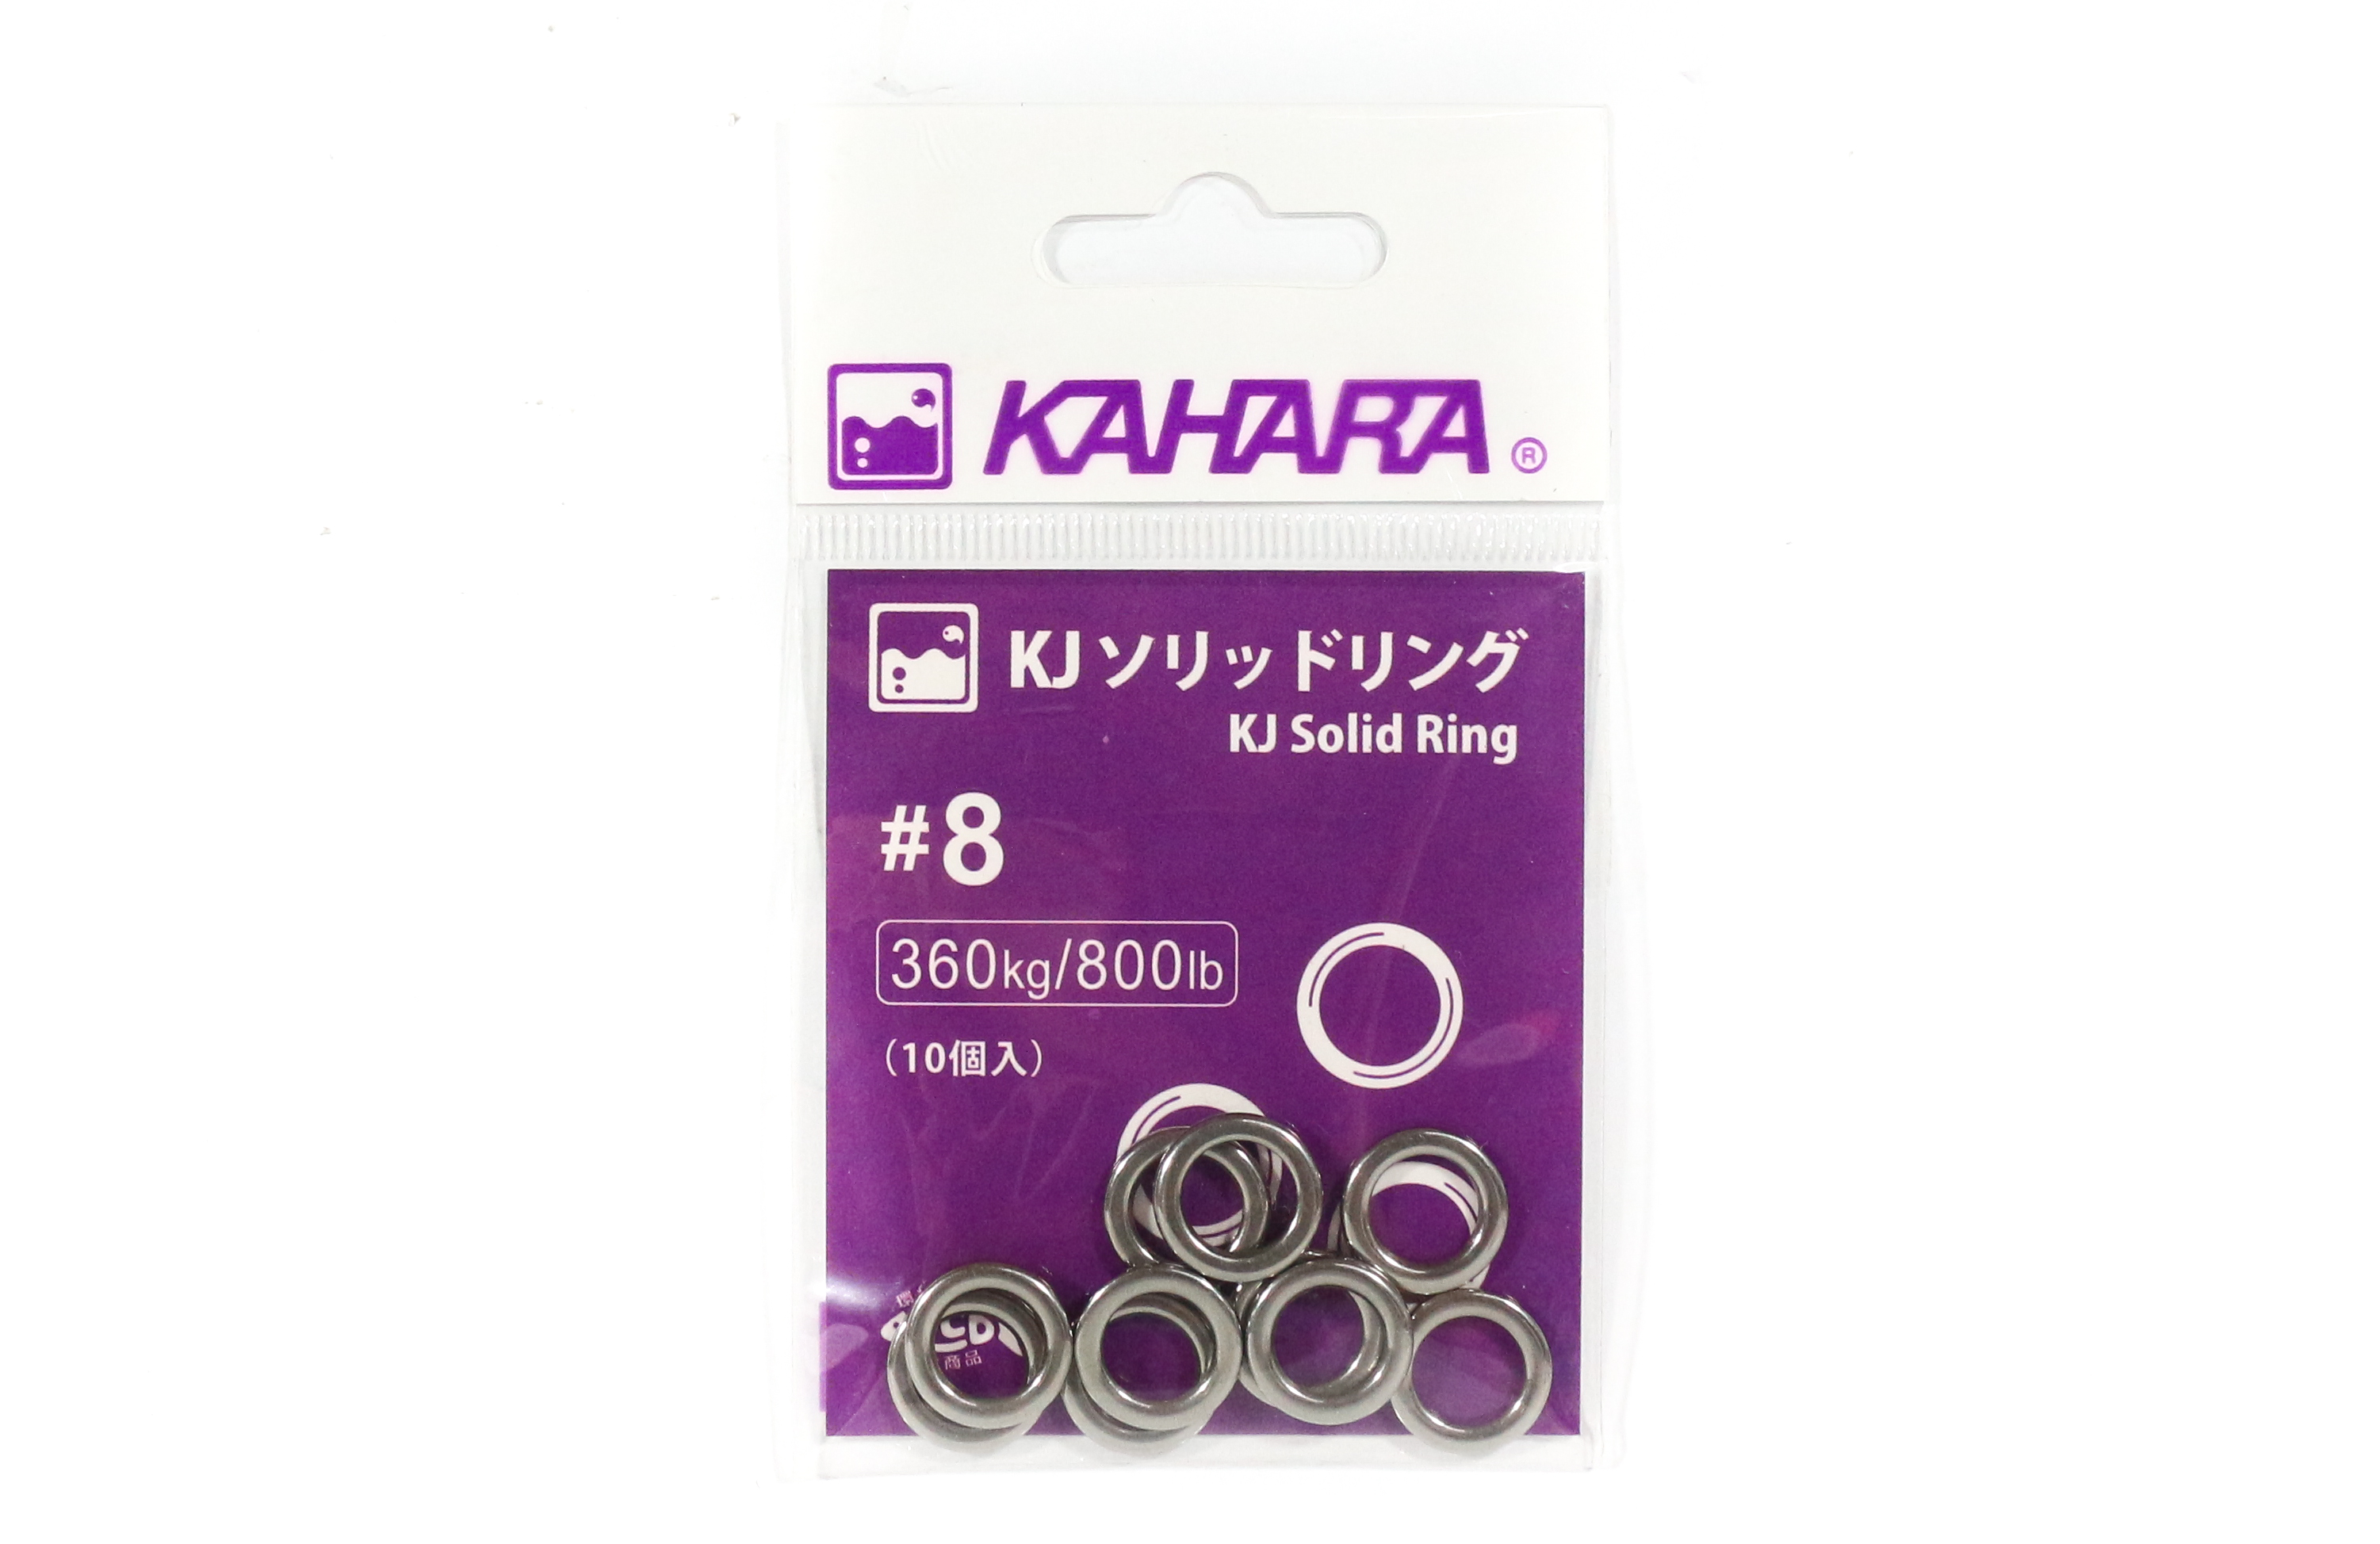 Kahara Solid Rings Stainless Steel Size 8 - 800lb (5749)